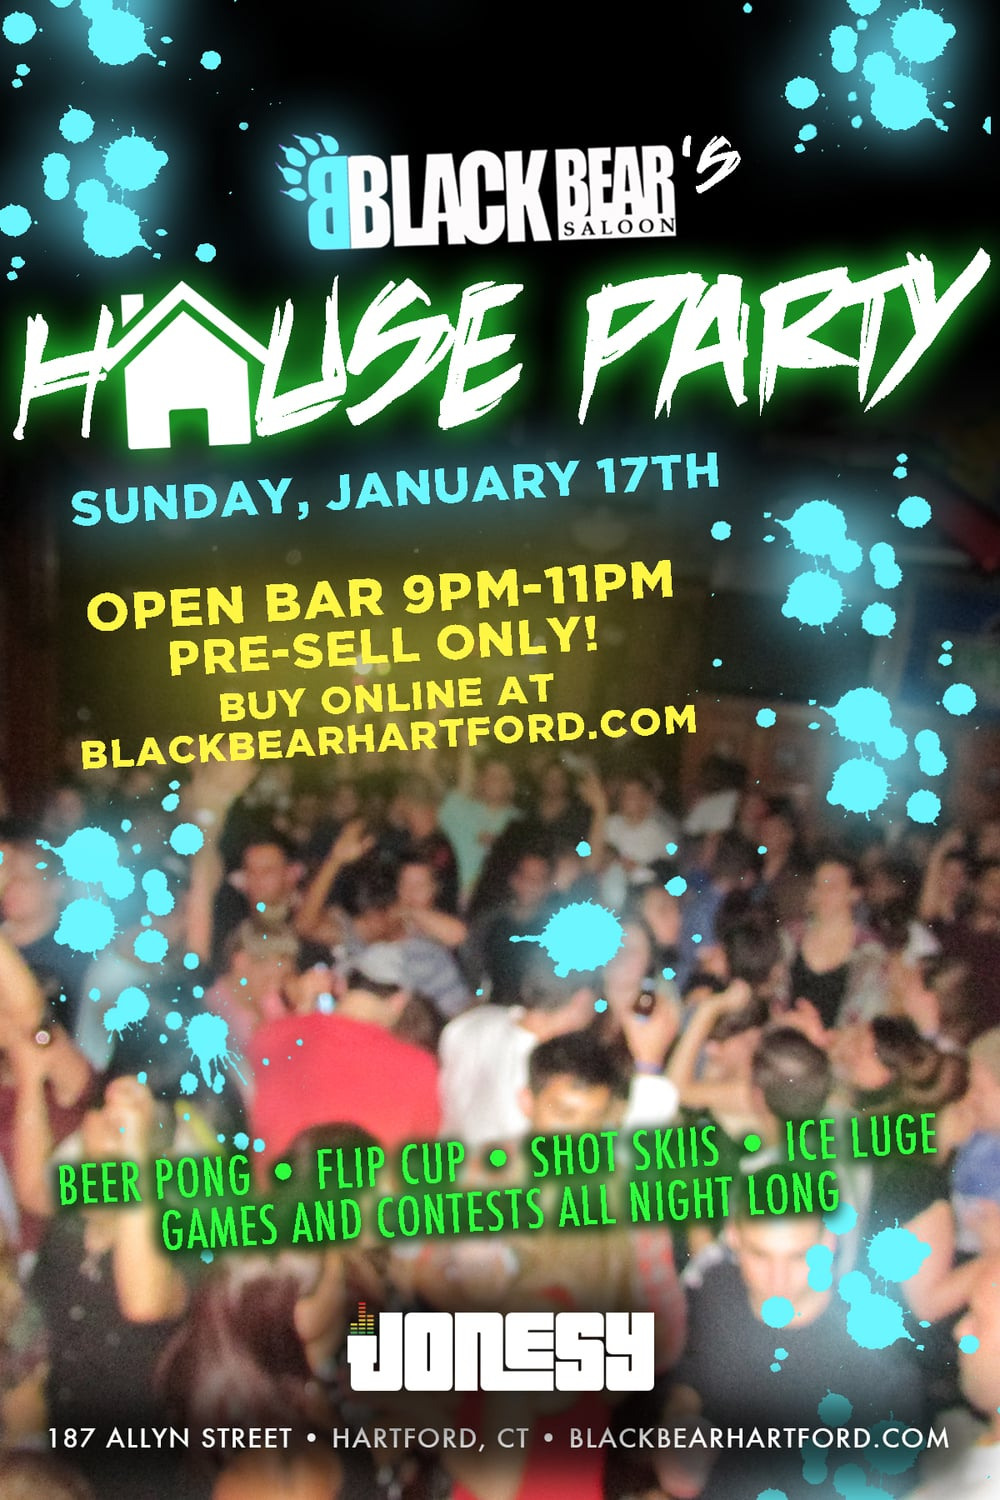 Sunday January 17th Black Bear is throwing it's very own HOUSE PARTY! Drinking games and contests all night long.  Prizes will be given out and we will be bringing everyone to fireball heaven. Good thing Monday is a holiday so you have a day of recovery! Get your open bar tickets online right now for open bar from 9-11pm   https://buyblitztickets.com/NYFkD  . Hope to see you all there!